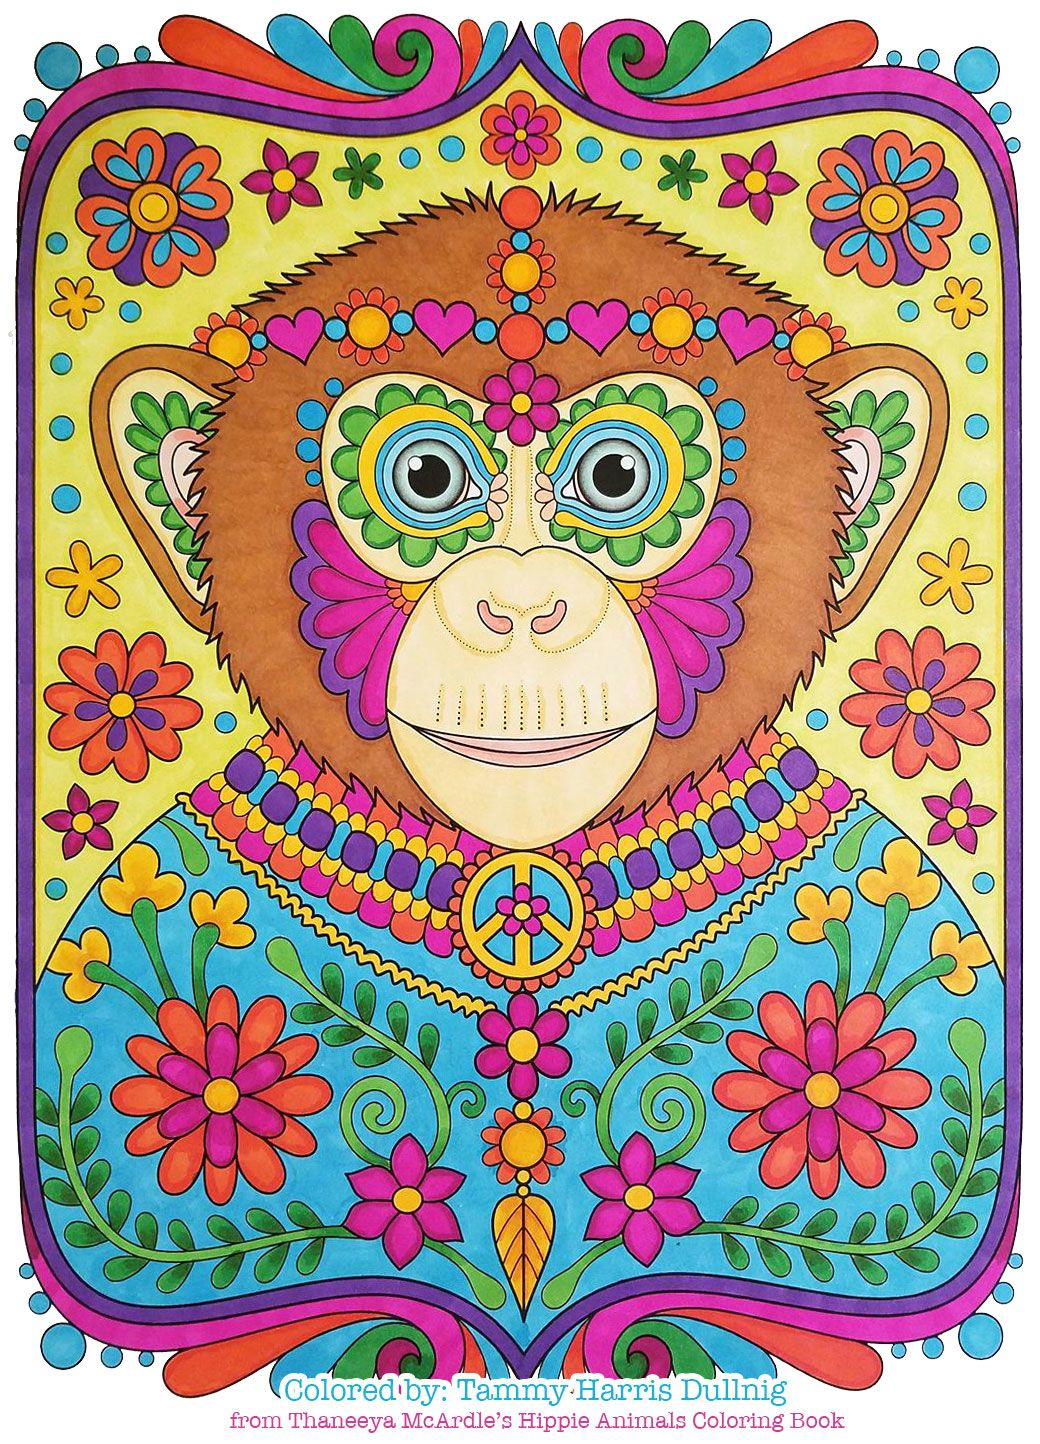 Hippie Chimp Coloring Page From Thaneeya McArdles Hippie Animals Coloring Book Colored By